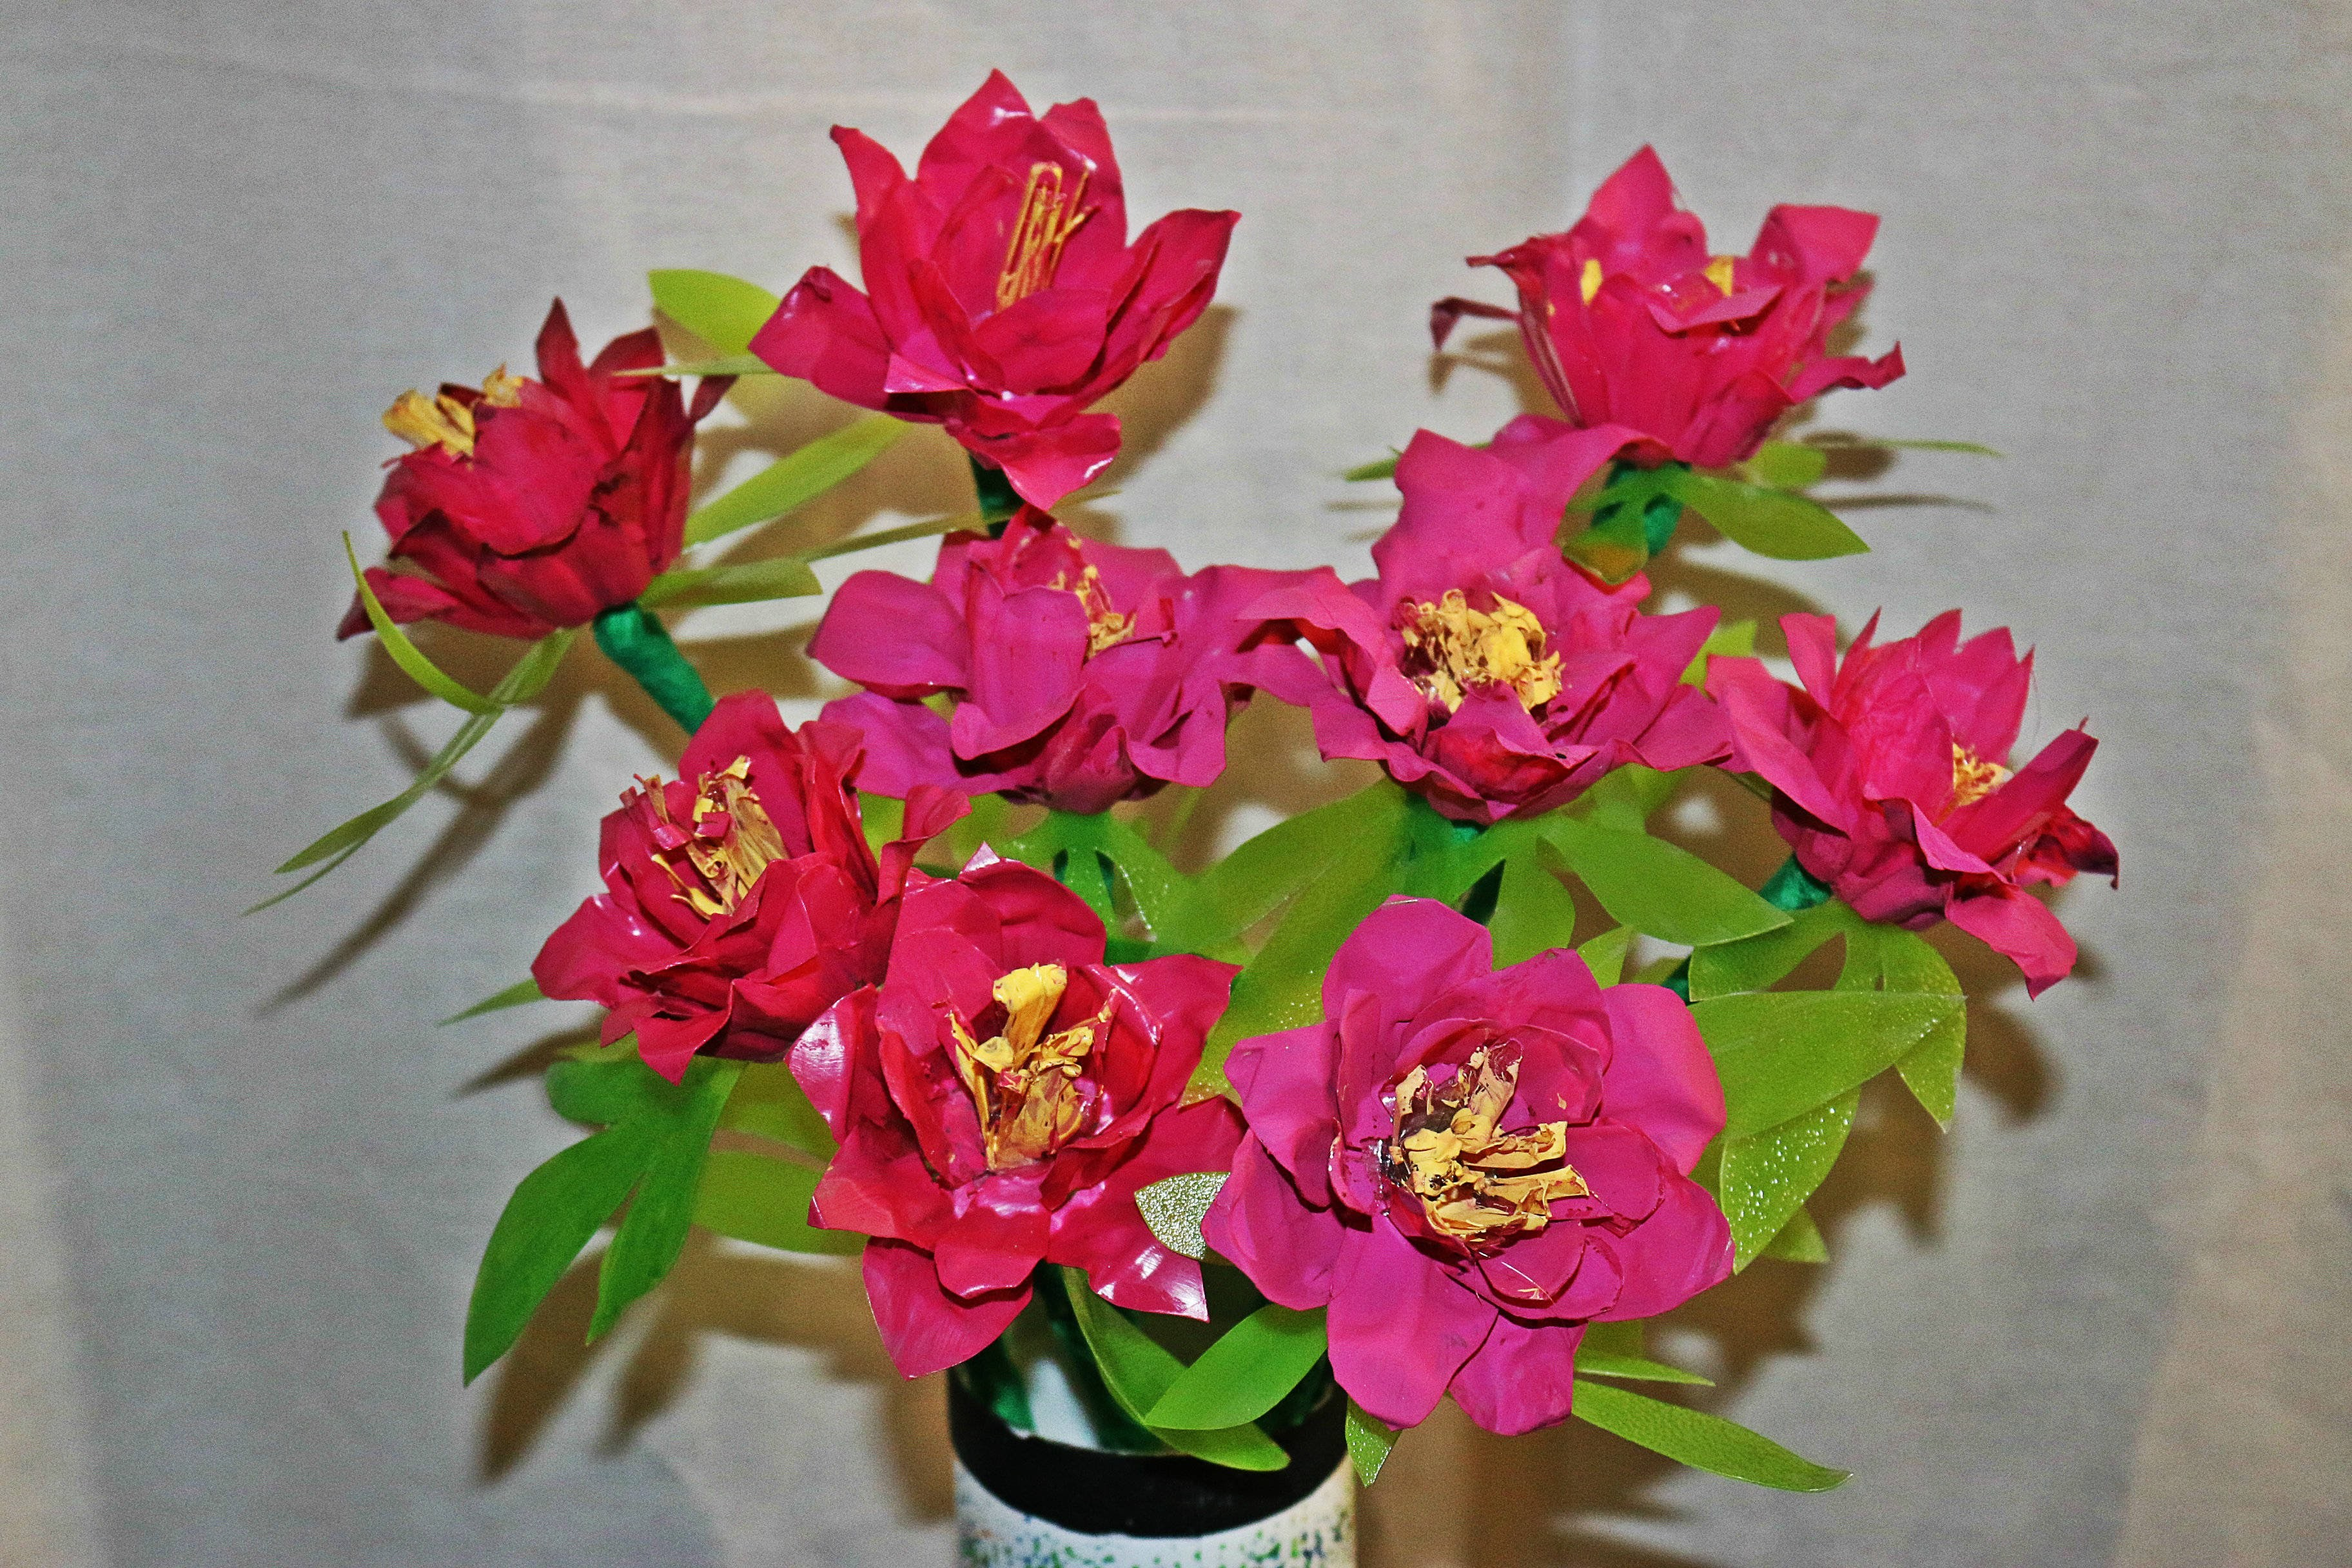 Recycled DIY: Flower Showpiece made out of Plastic Egg Carton !